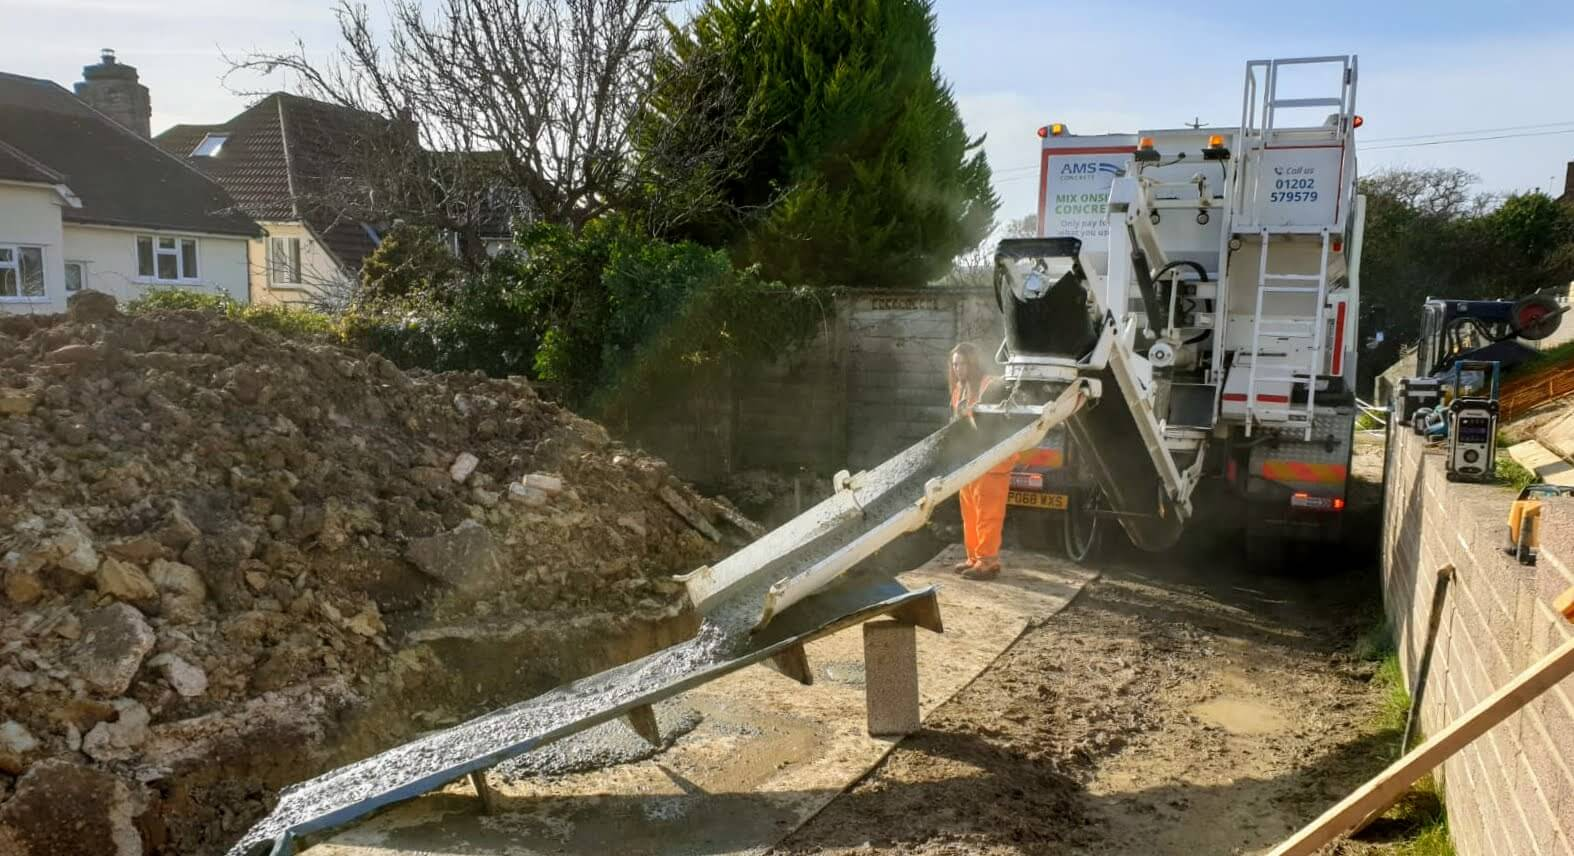 Pouring concrete in Poole